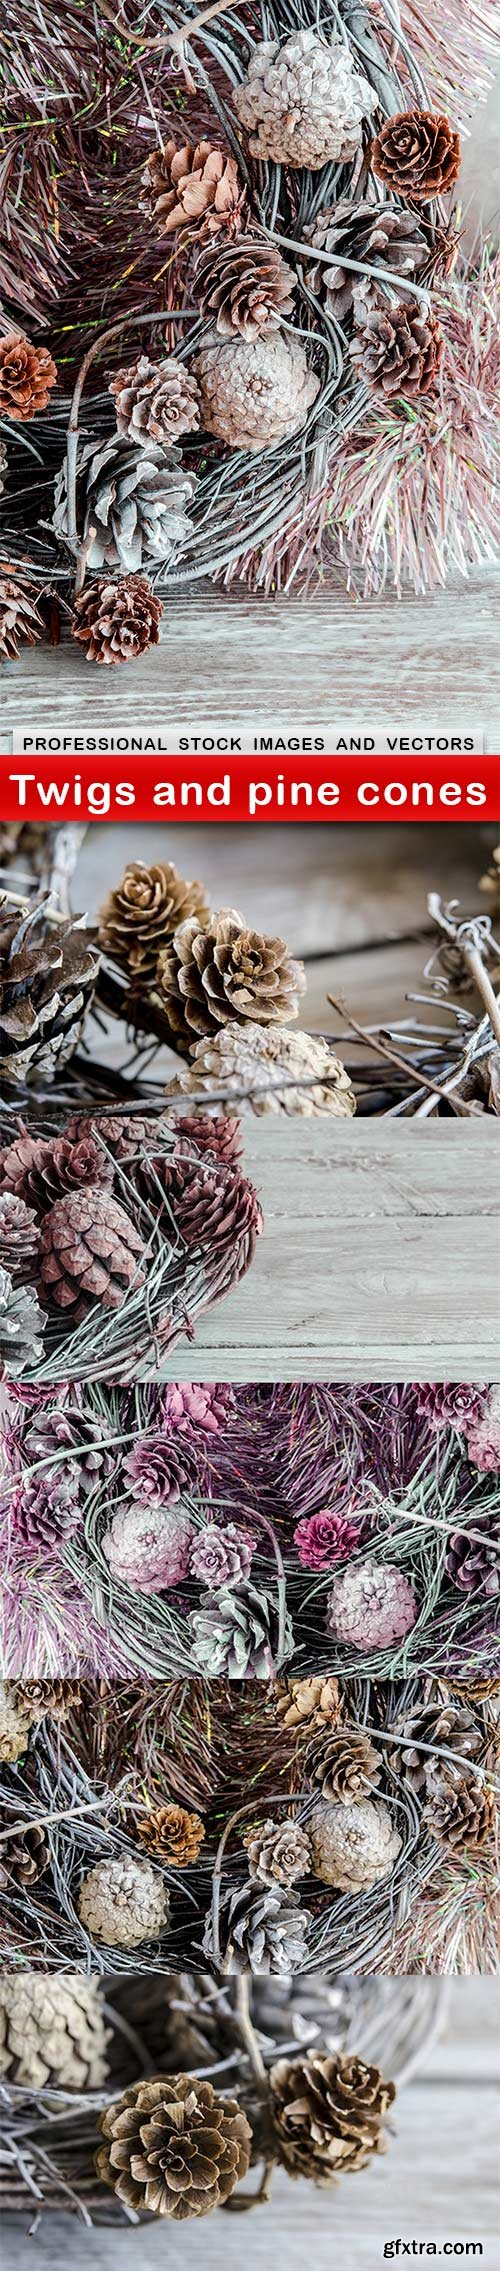 Twigs and pine cones - 6 UHQ JPEG